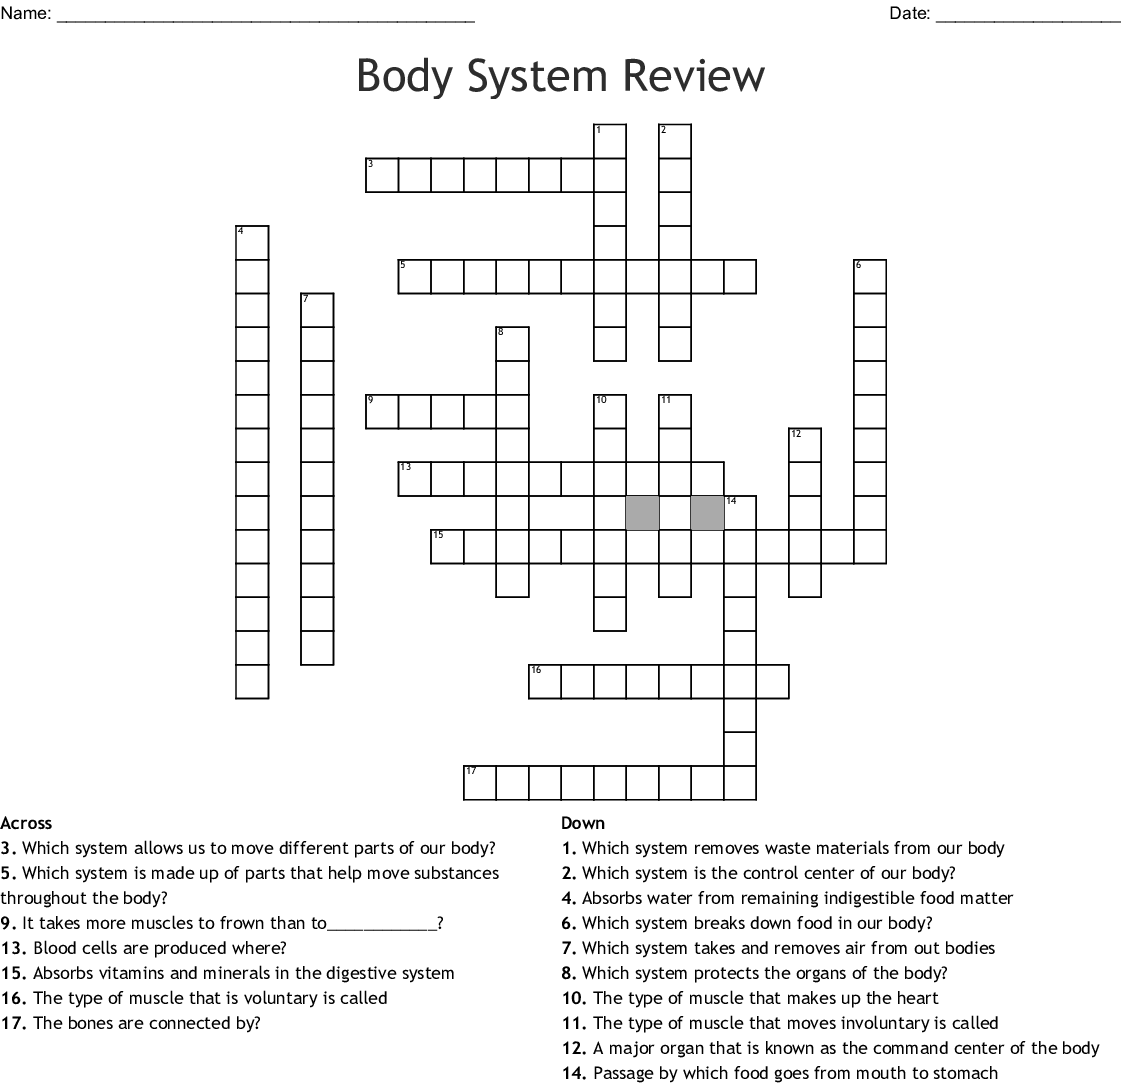 Human Body Systems Crossword Puzzle - WordMint